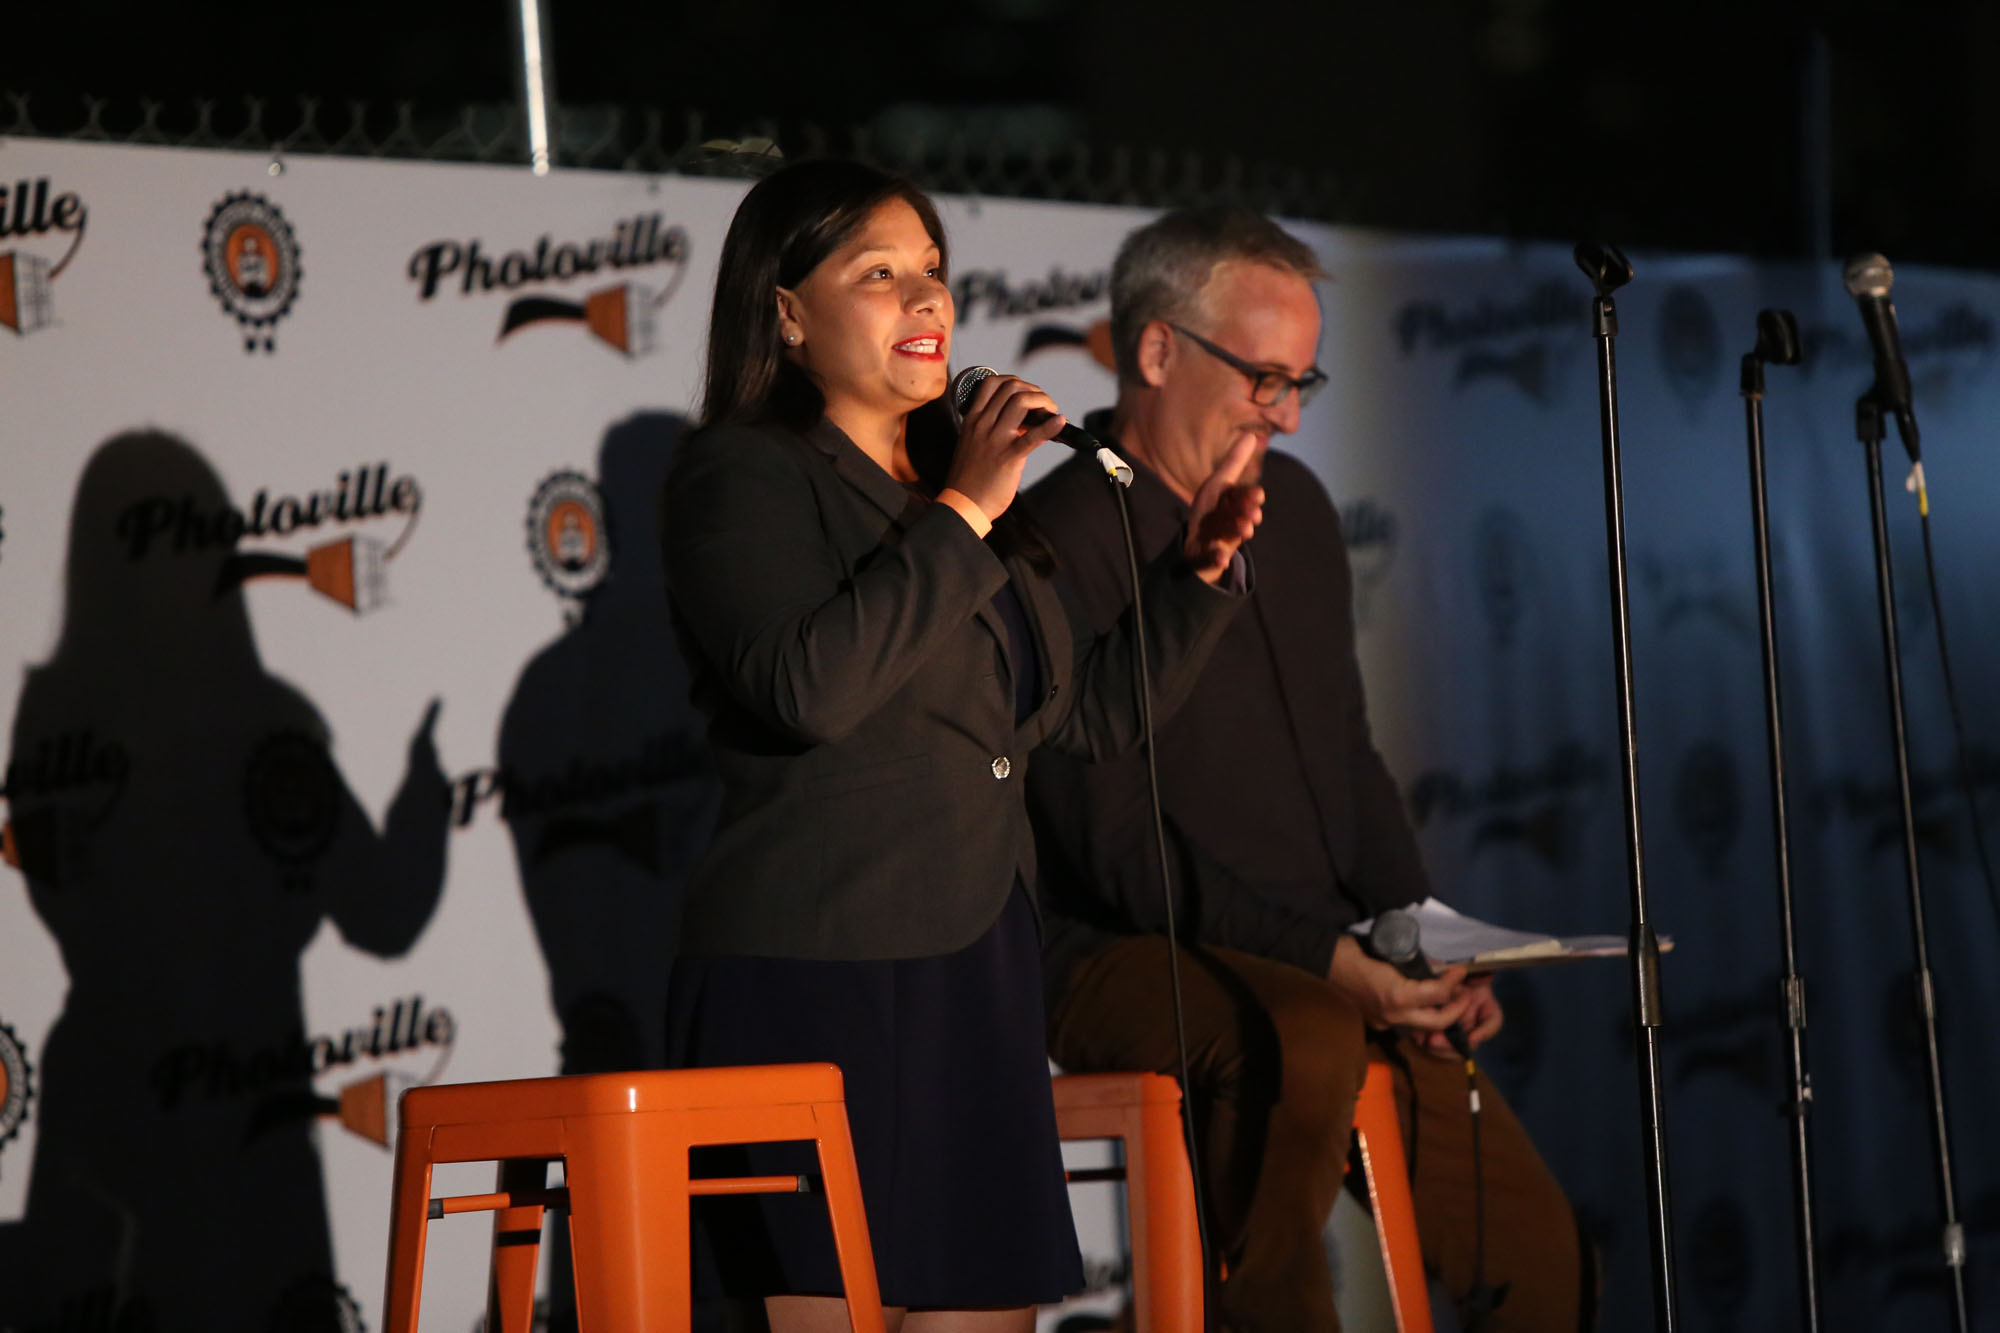 Marisol Conde-Hernandez and Tim Raphael talk about undocumented immigrants in the U.S. and their precarious position in the current political climate. (Photo by Anthony Alvarez)